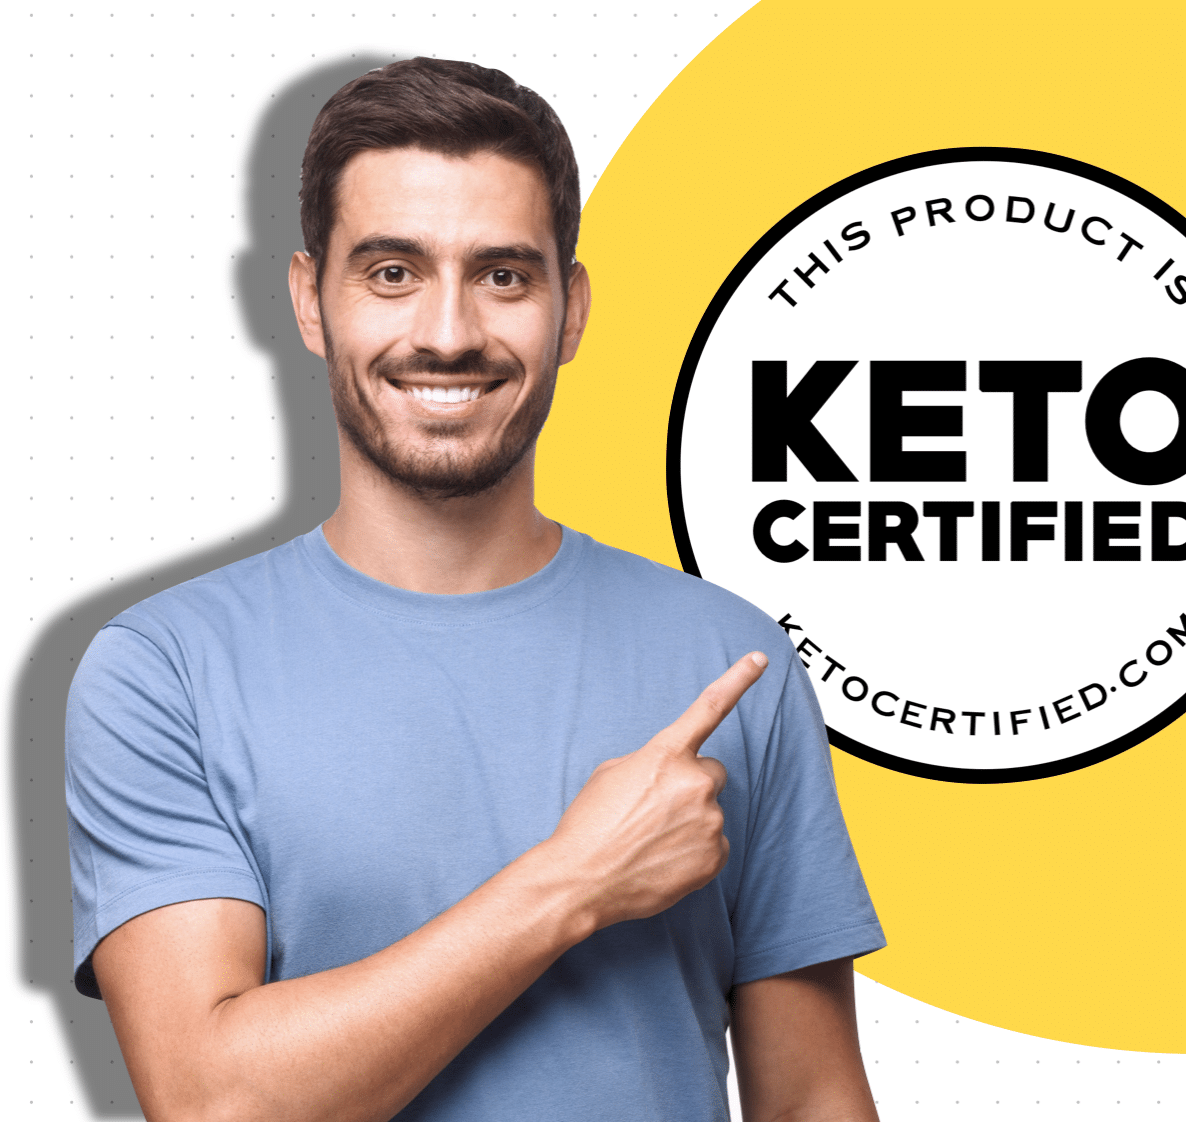 keto certification application